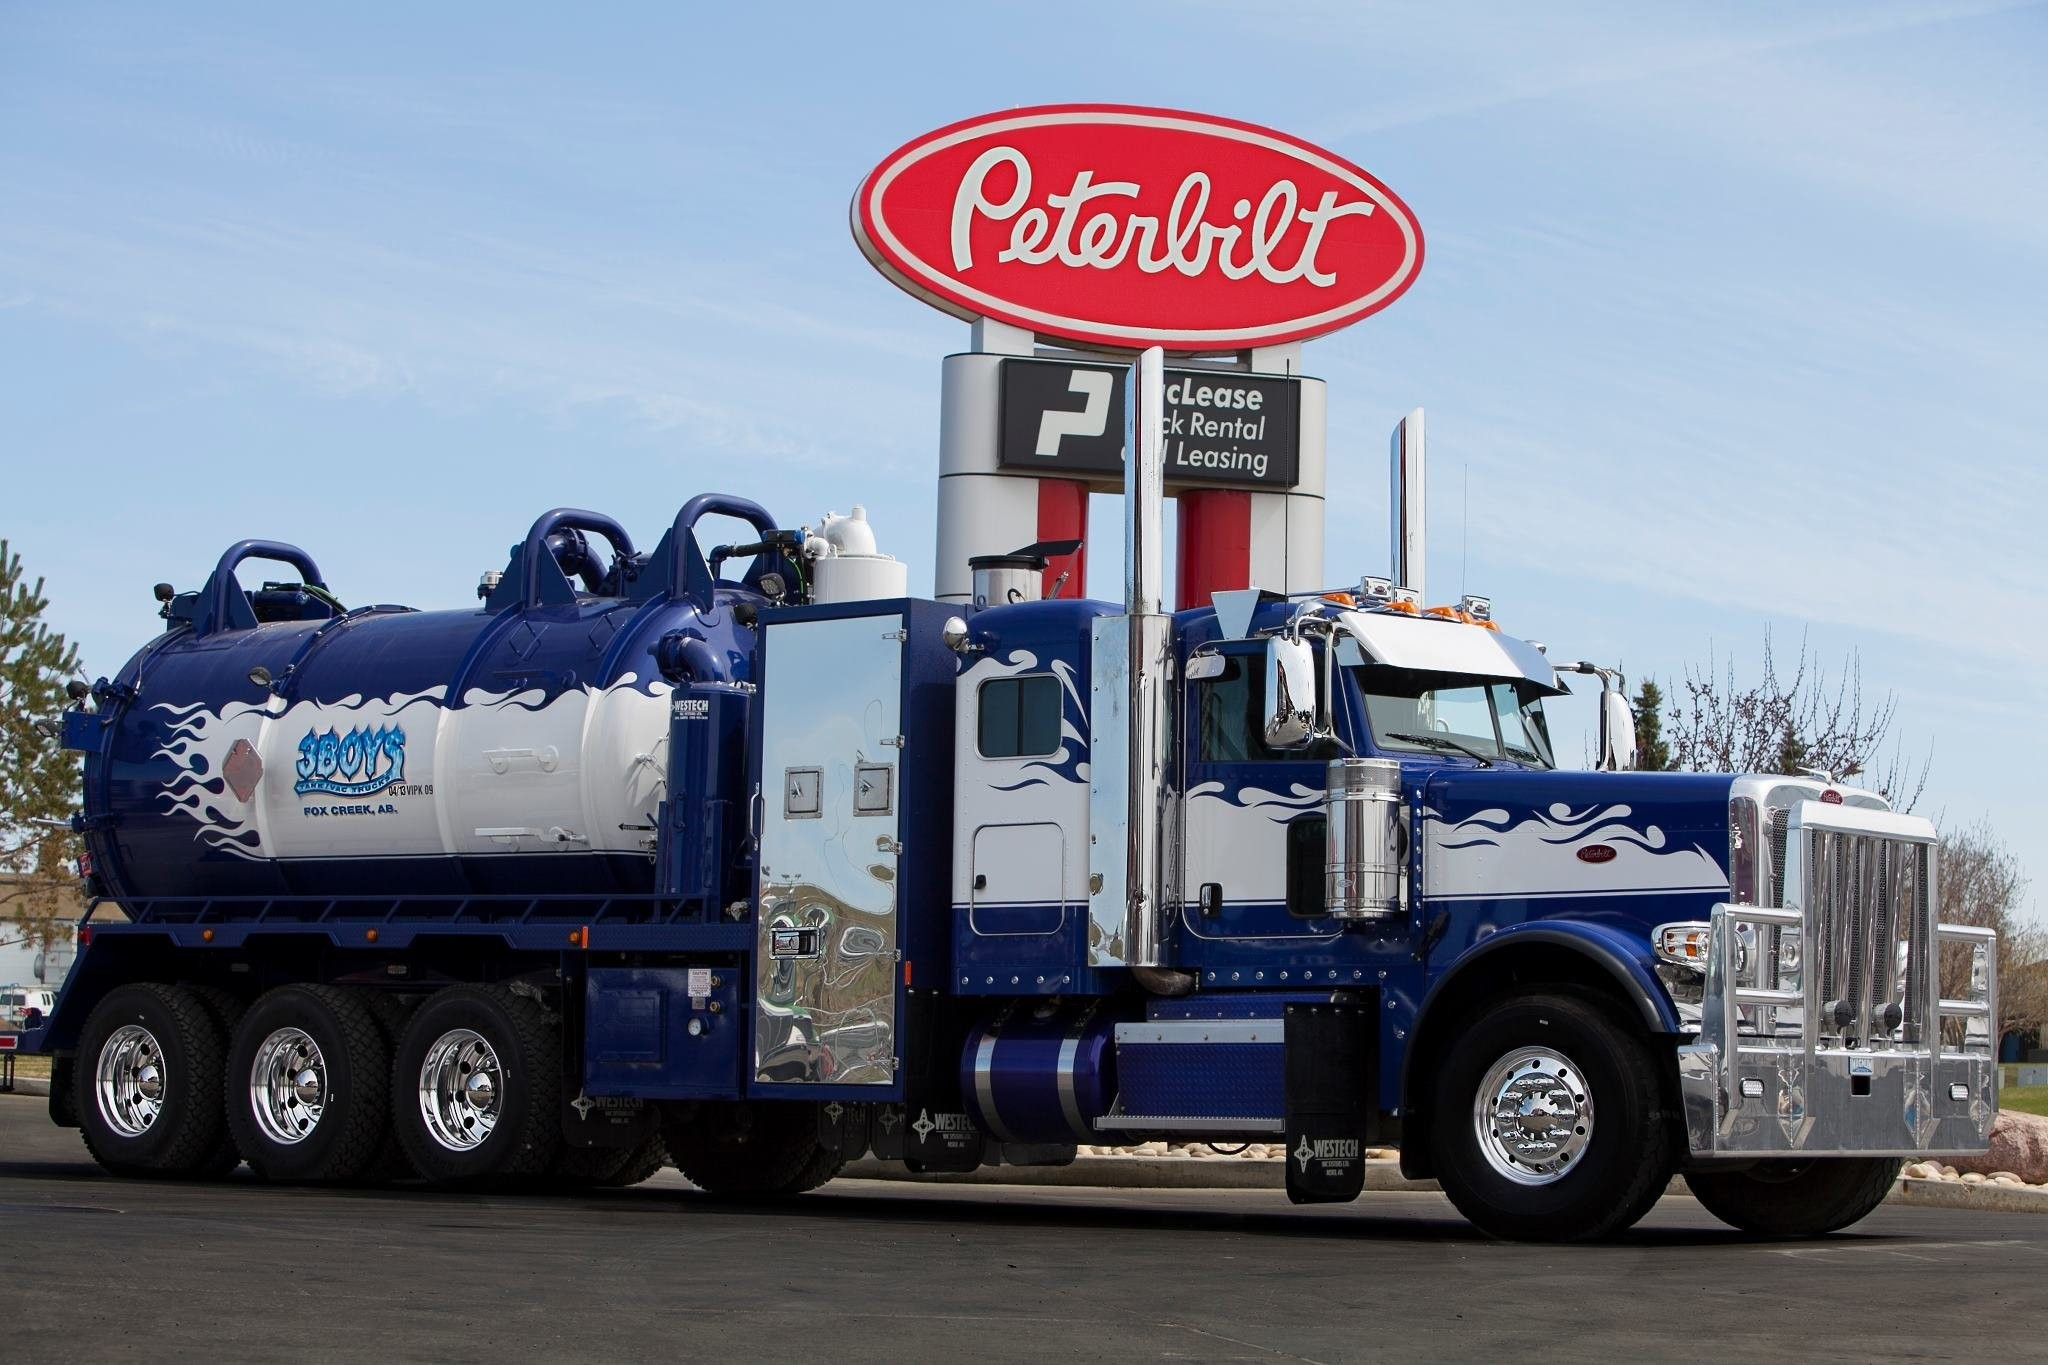 2048x1365 1920x1440 Peterbilt Wallpapers - Wallpaper Cave